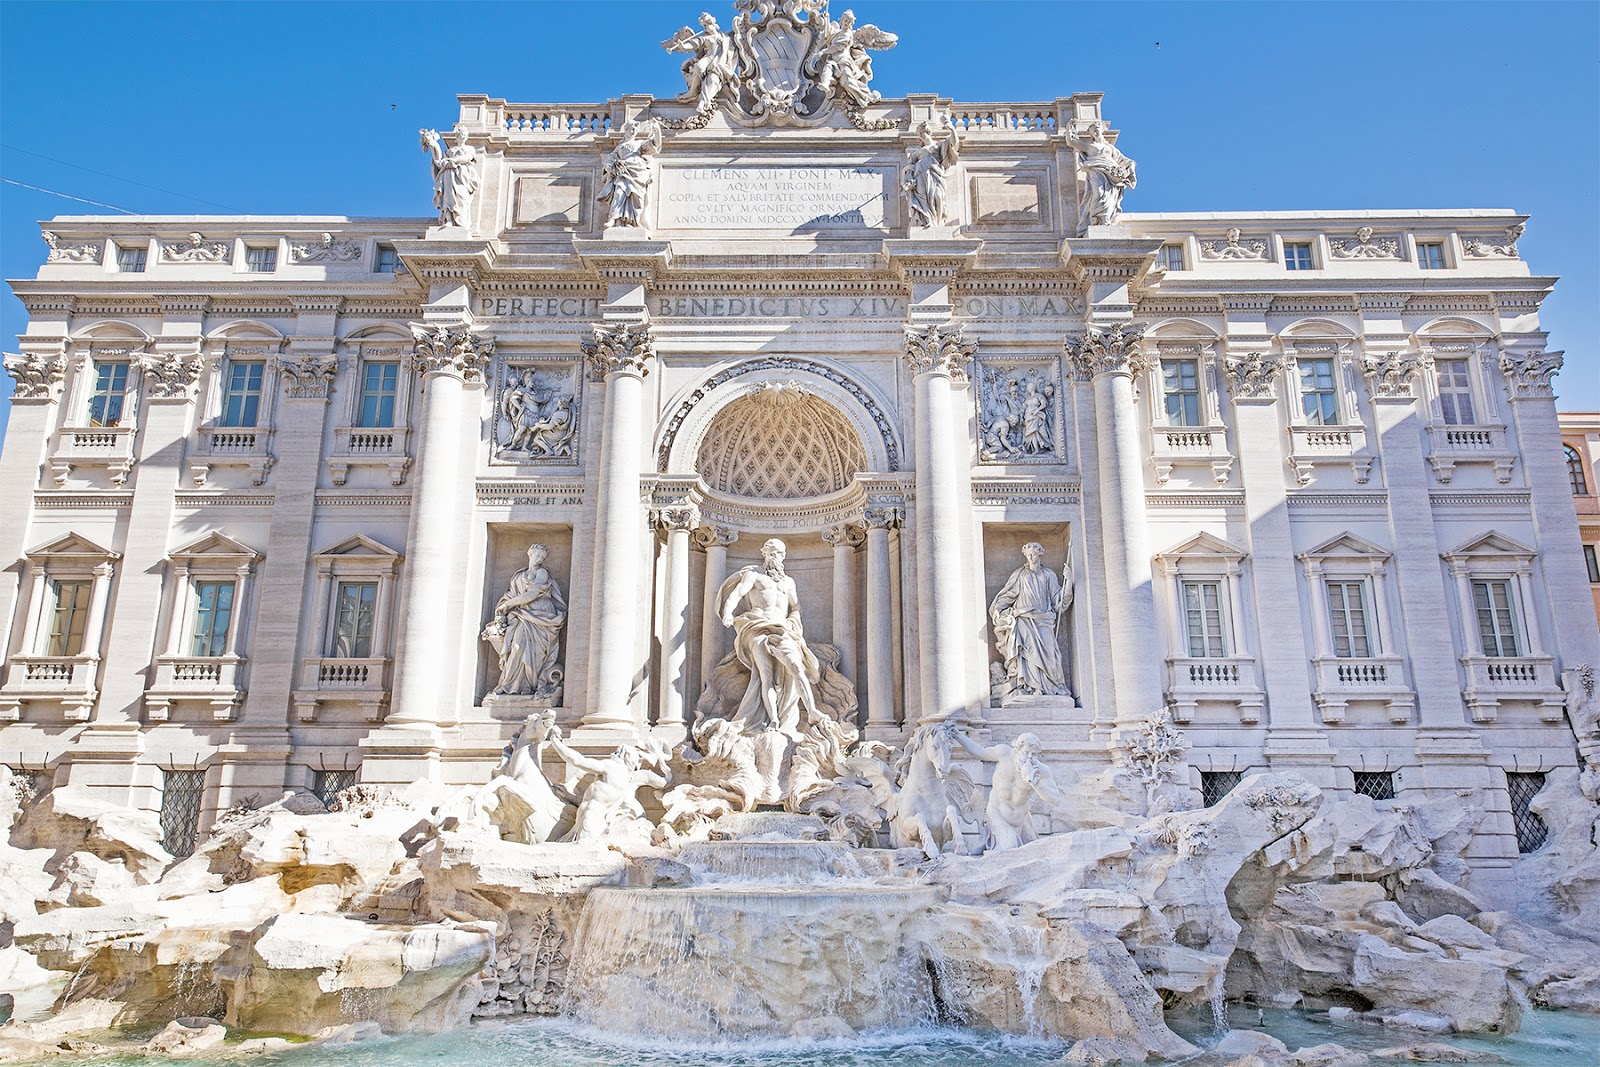 Rome, Italy by Posh, Broke, & Bored - Trevi Fountain